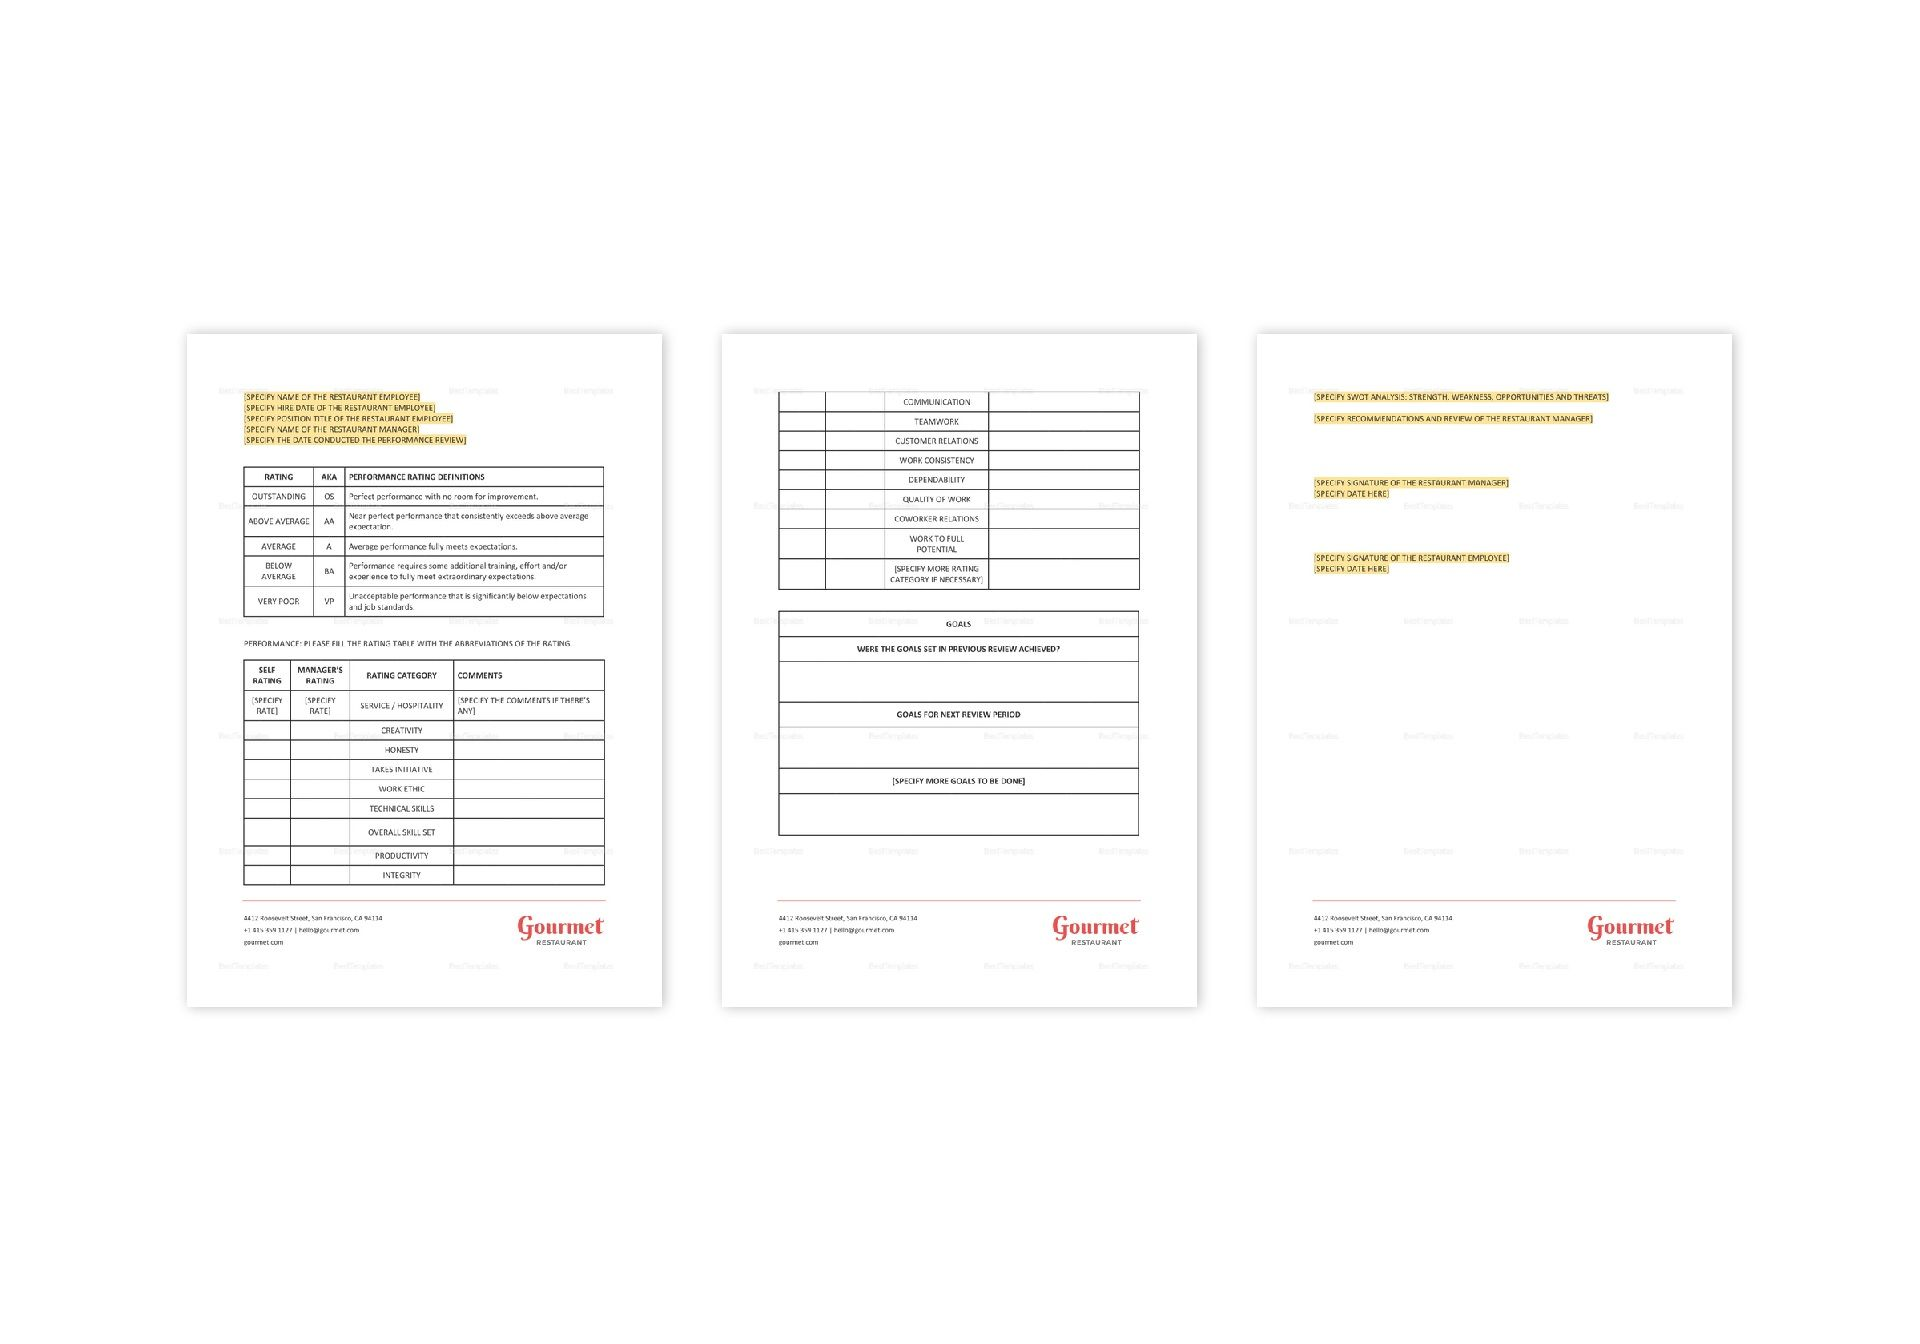 Restaurant Employee Performance Review Form Template in